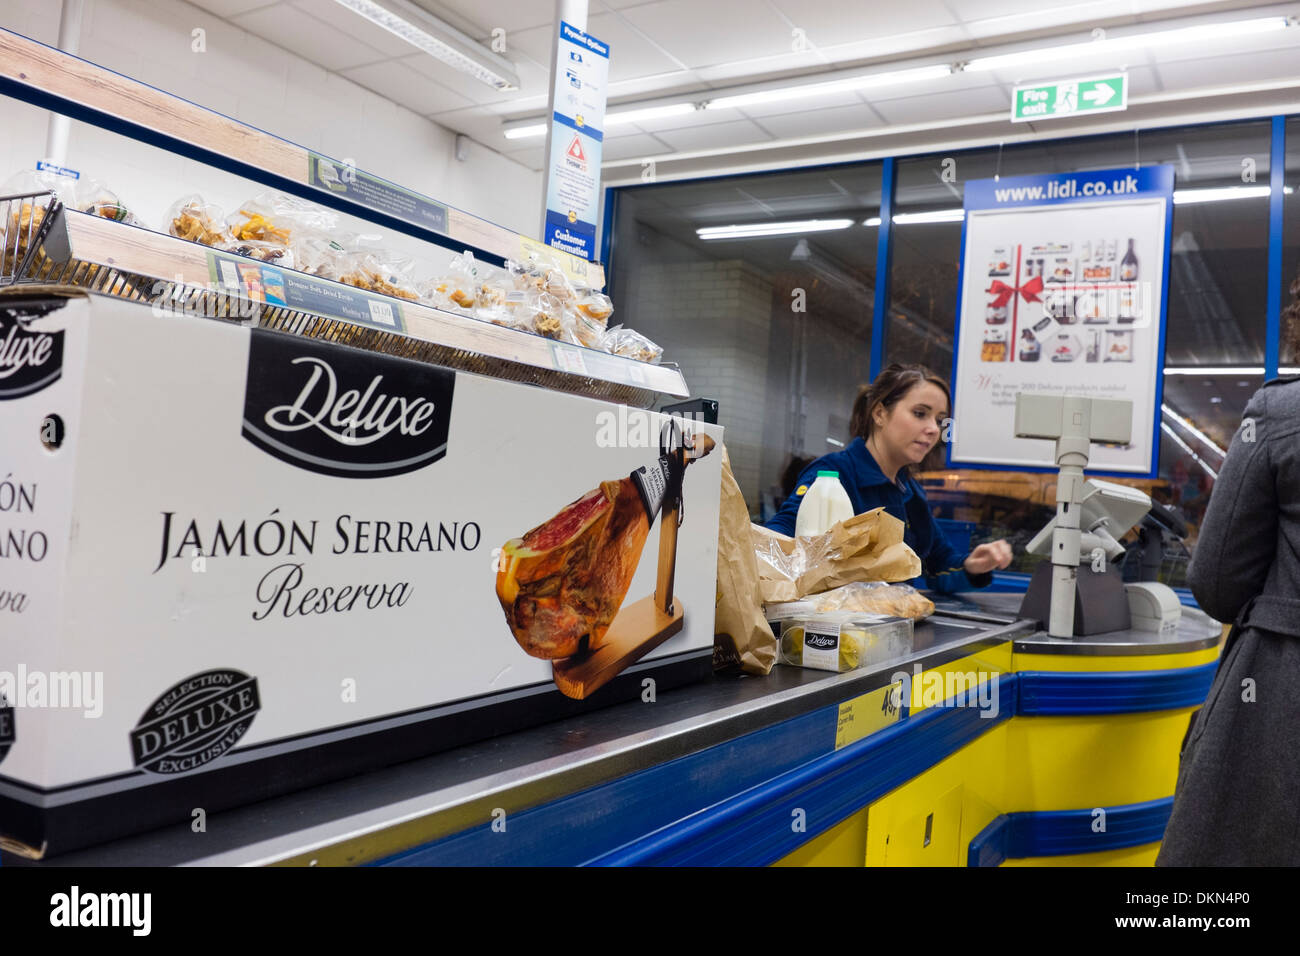 a whole serrano ham one of lidl discount supermarket range of foods at the checkout about to be scanned uk